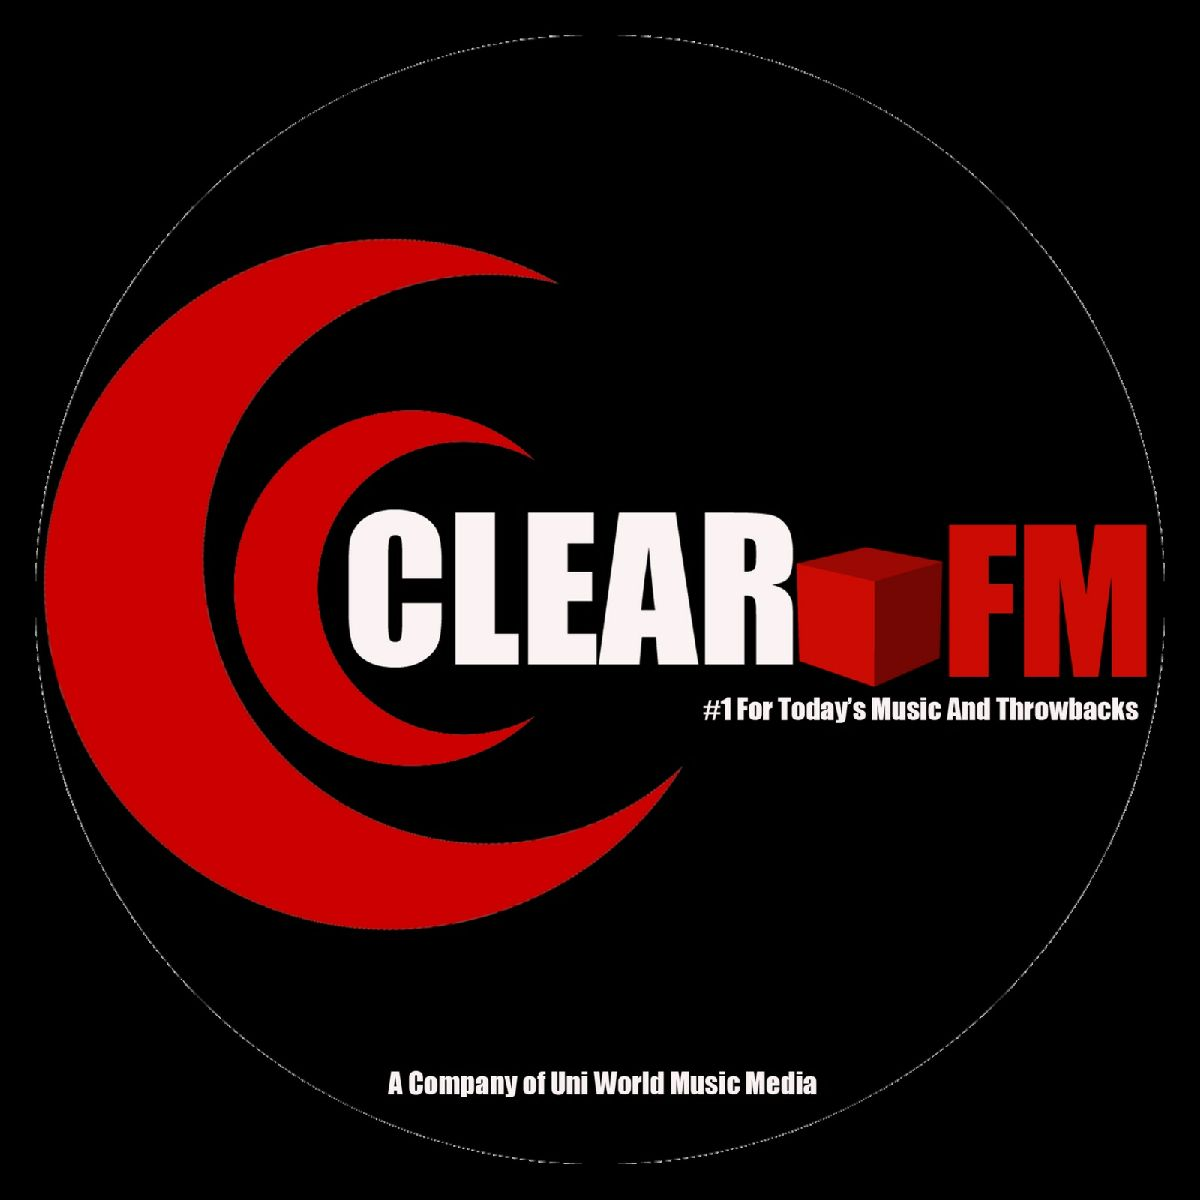 Clear FM